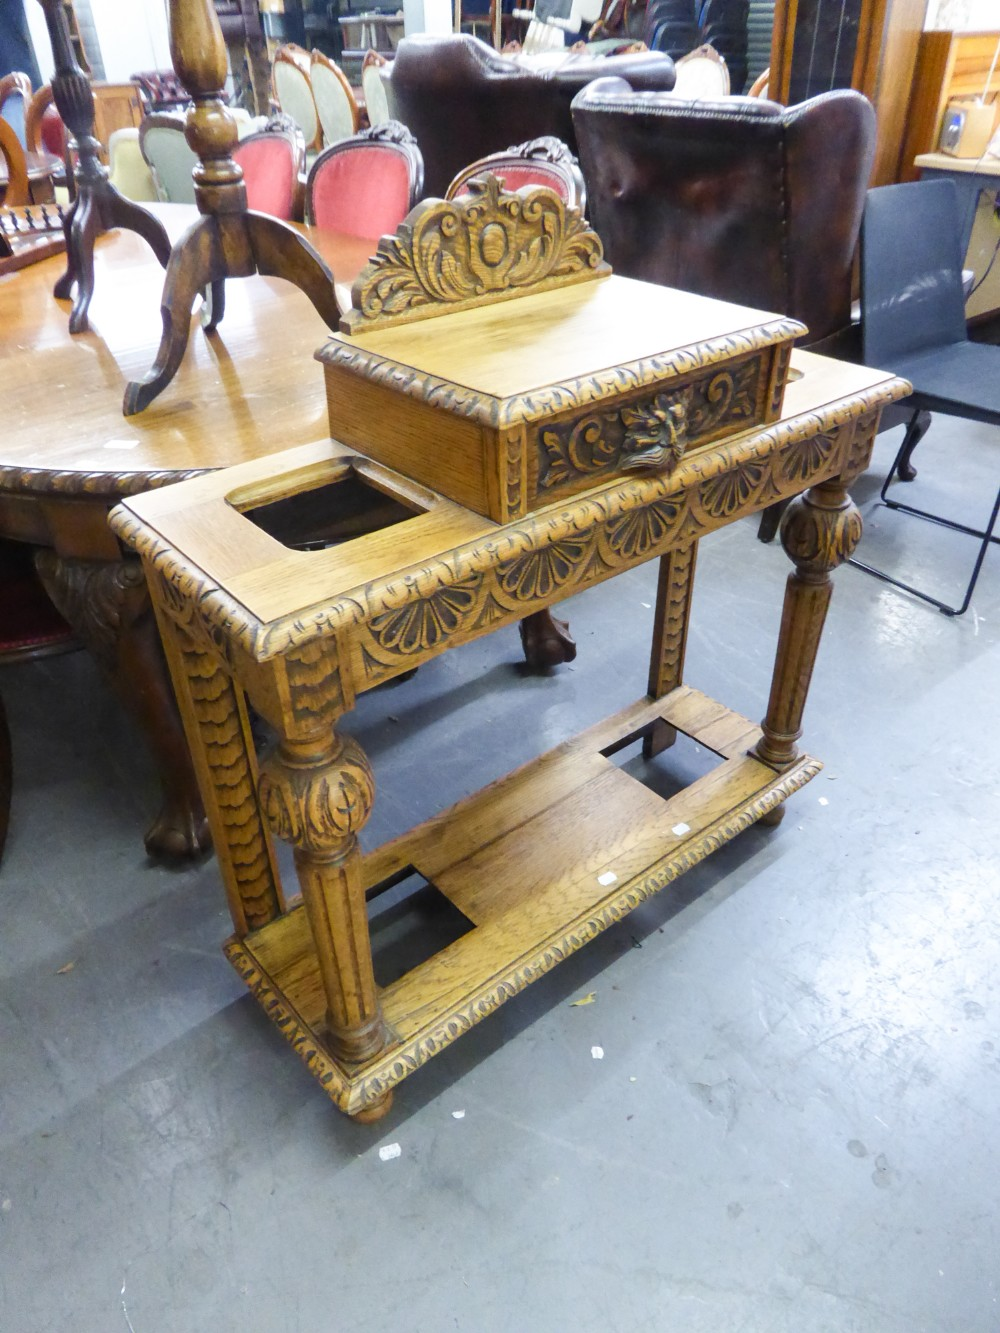 Lot 39 - A 20TH CENTURY OAK HALL STAND WITH RAISED CENTRAL DRAWER HAVING LION HANDLE, UMBRELLA STANDS TO